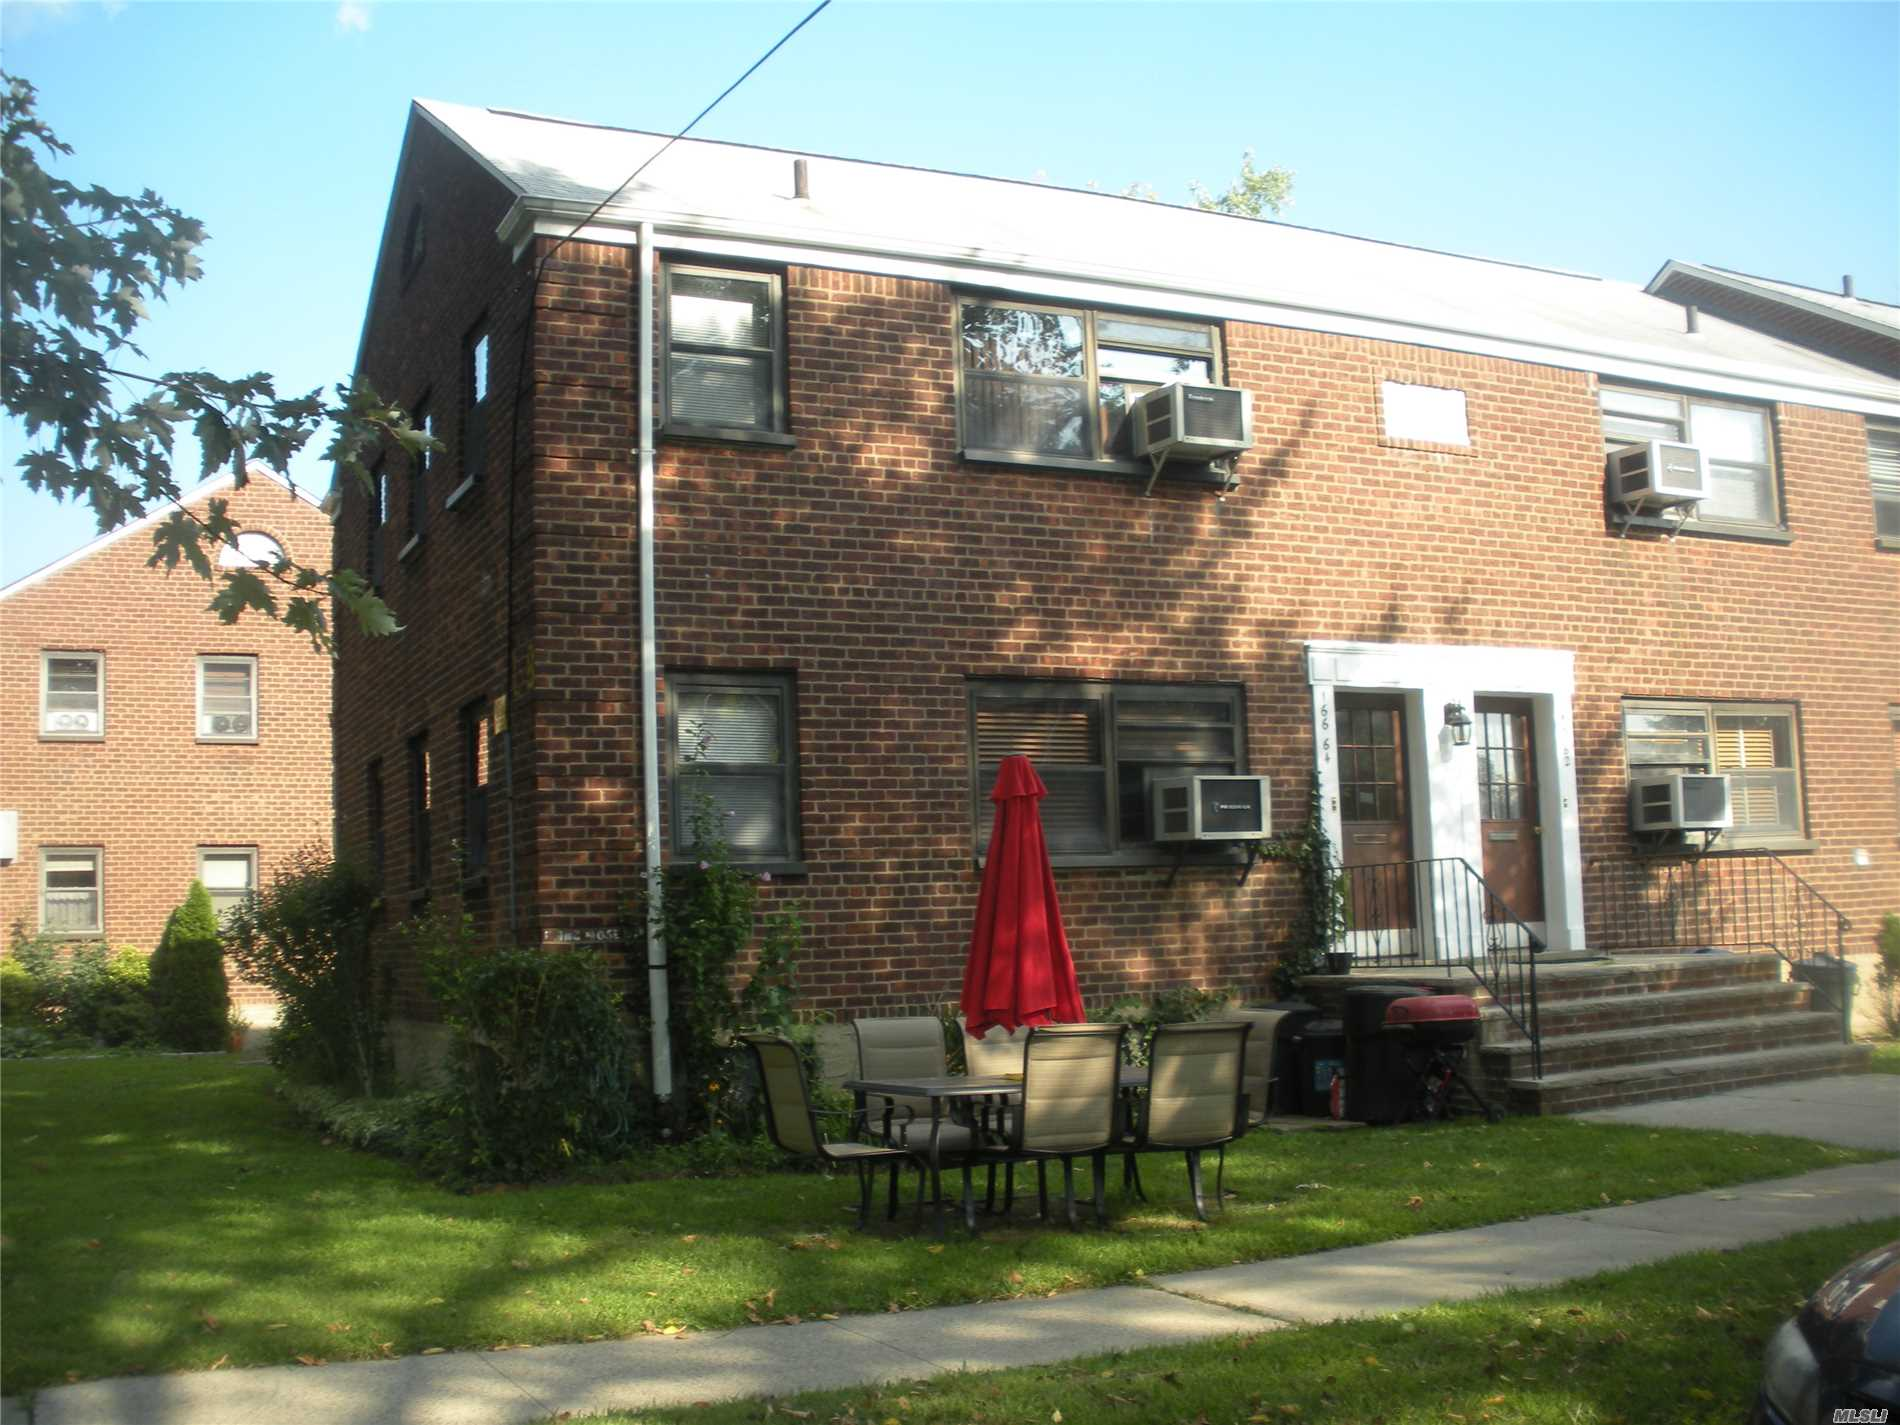 Bright And Spacious One Bedroom Corner Unit On First Floor. Beautiful Hardwood Floors, Freshly Painted, New Kitchen With Stainless Steal Appliances And Granite Counter Tops, Upgraded Bathroom. New Samsung Washer/Dryer In Unit. Basement Storage For Bikes, Etc.